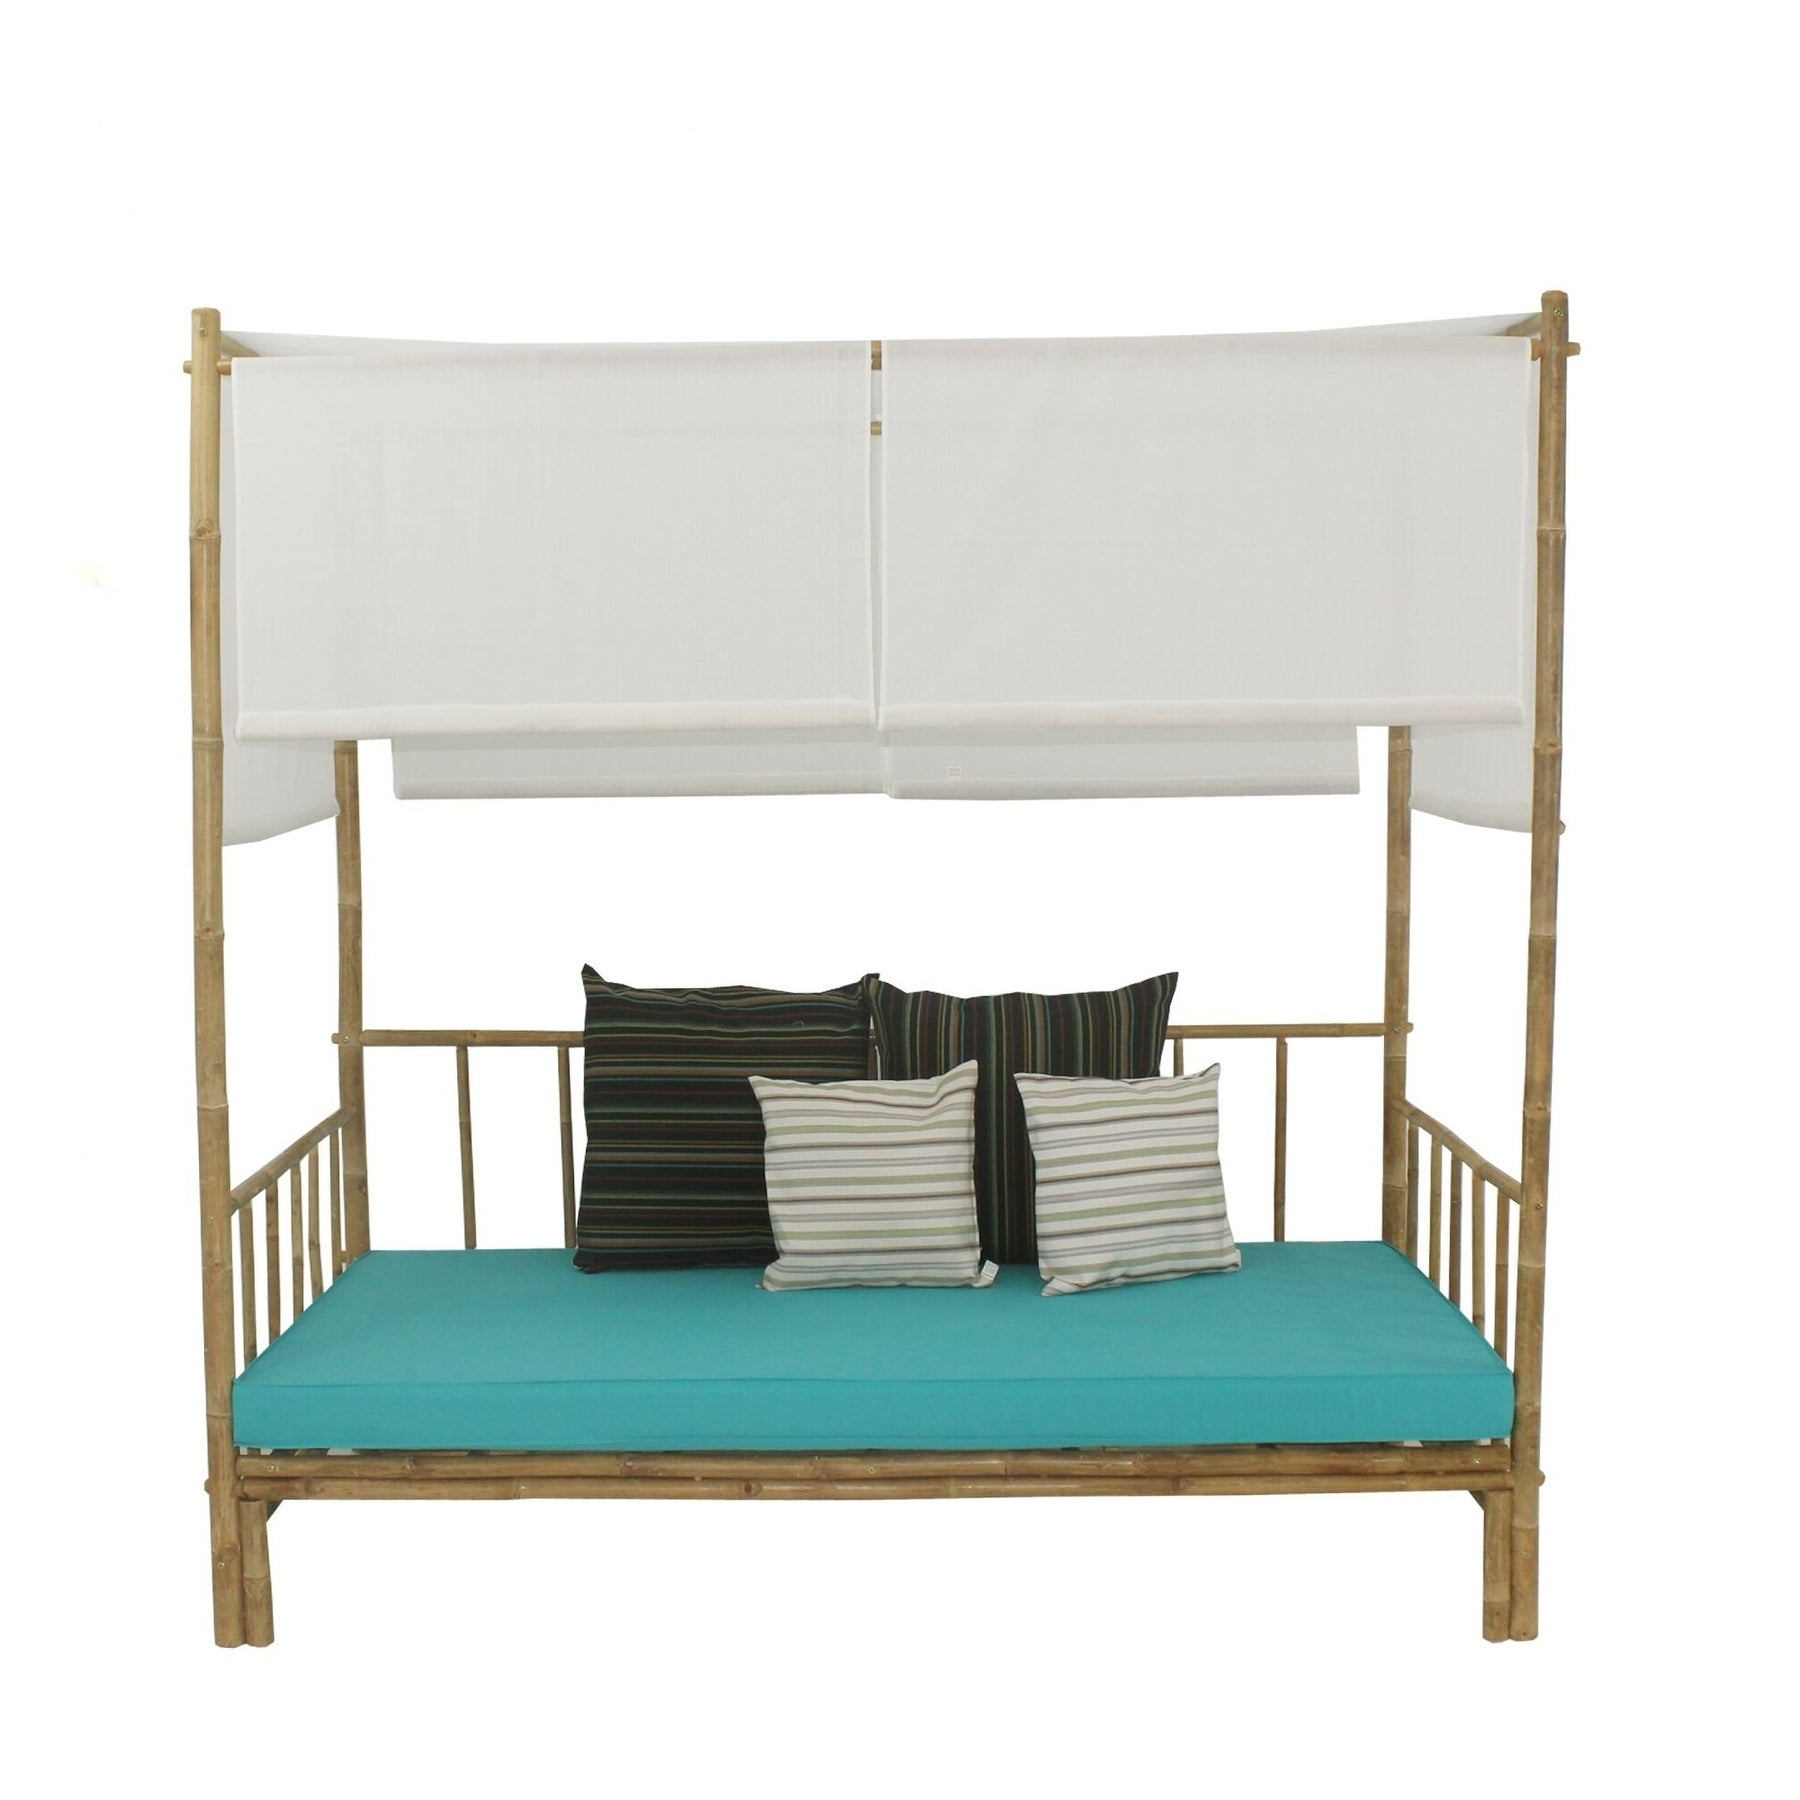 Latest Bamboo Daybeds With Canopy Inside Bamboo Daybed With Canopy (View 14 of 25)